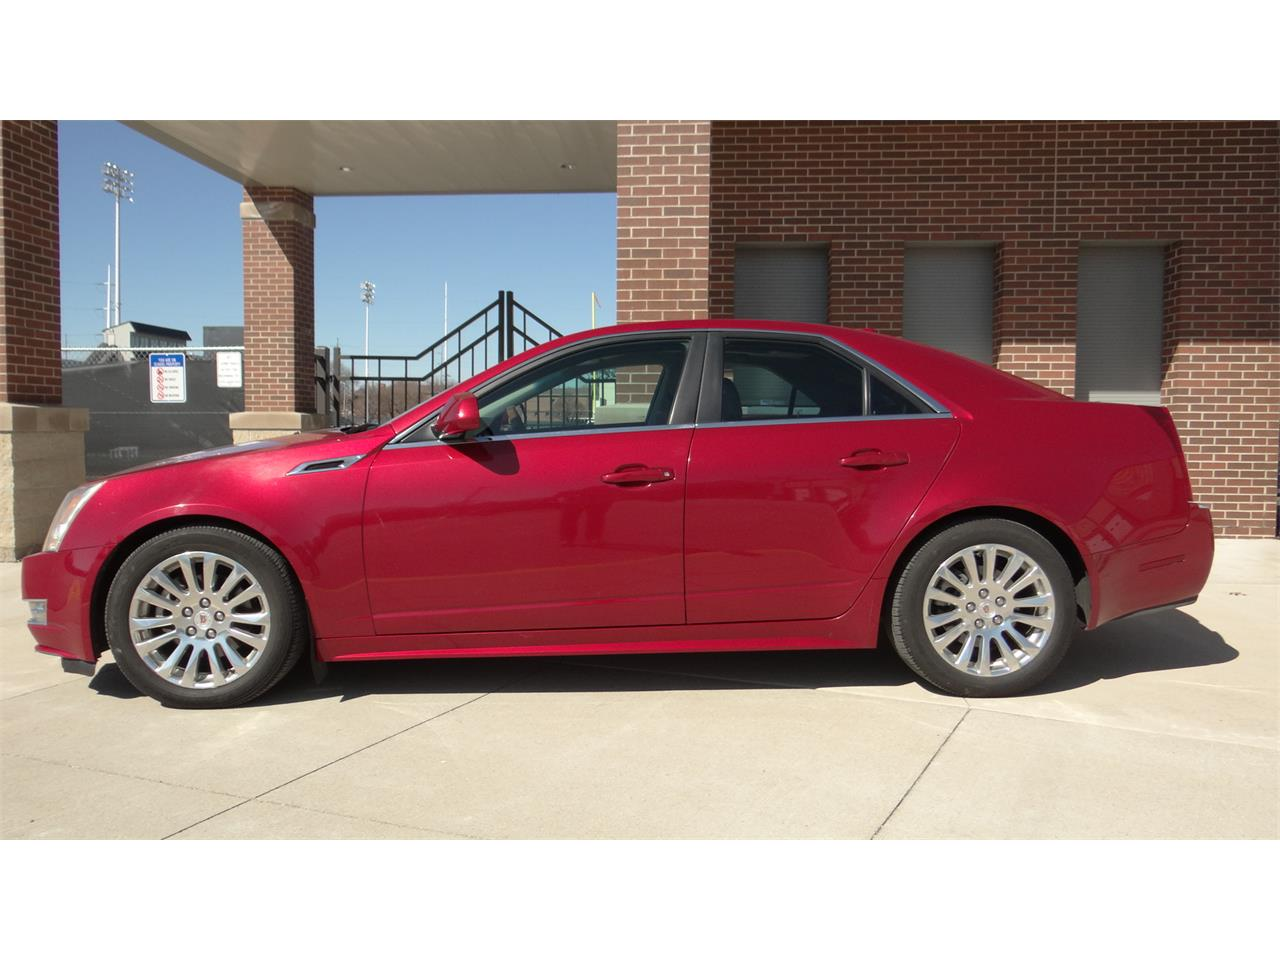 2011 Cadillac CTS (CC-1203230) for sale in Davenport, Iowa